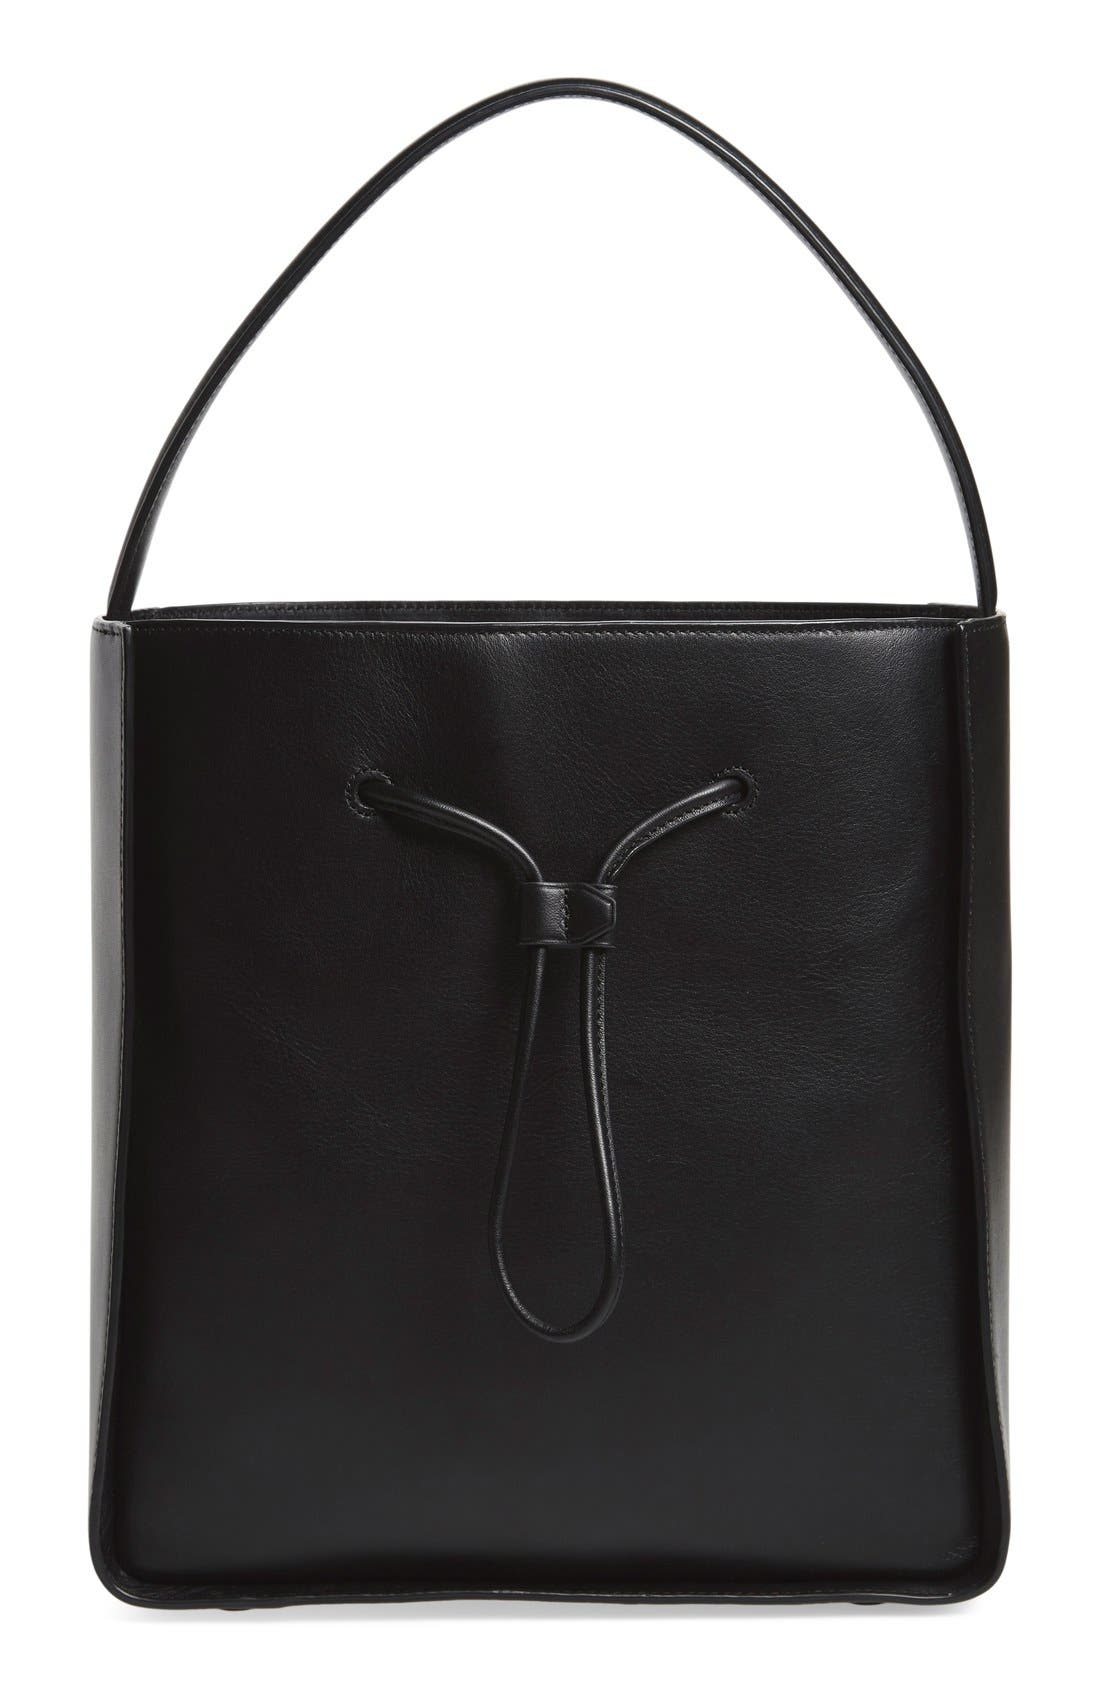 Main Image - 3.1 Phillip Lim 'Large Soleil' Bucket Bag